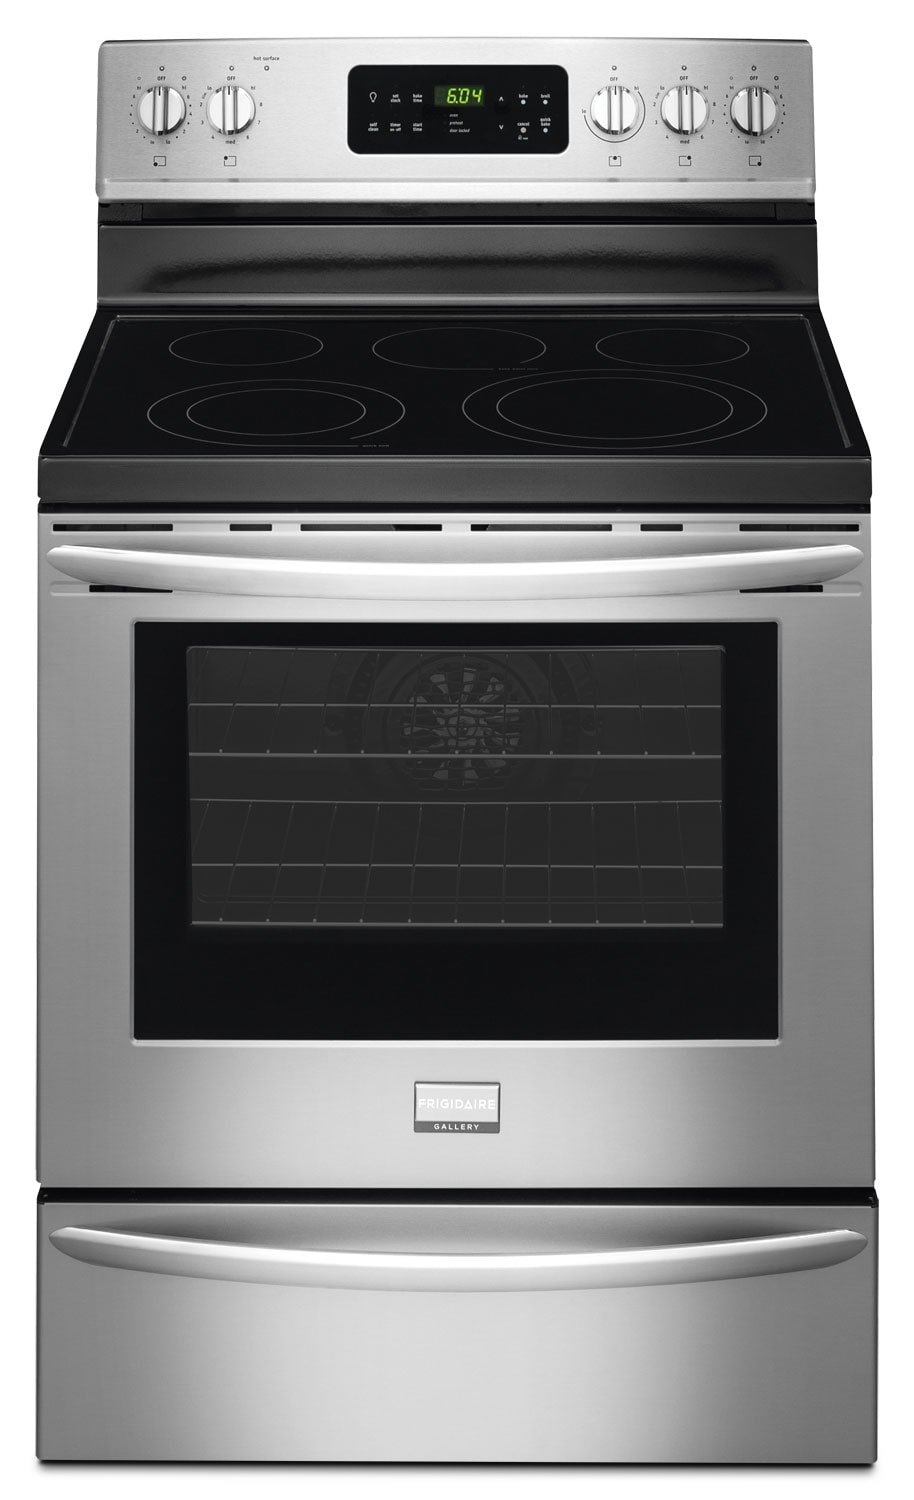 Cooking Products - Frigidaire Gallery 5.7 Cu. Ft. Freestanding Electric Range - Stainless Steel